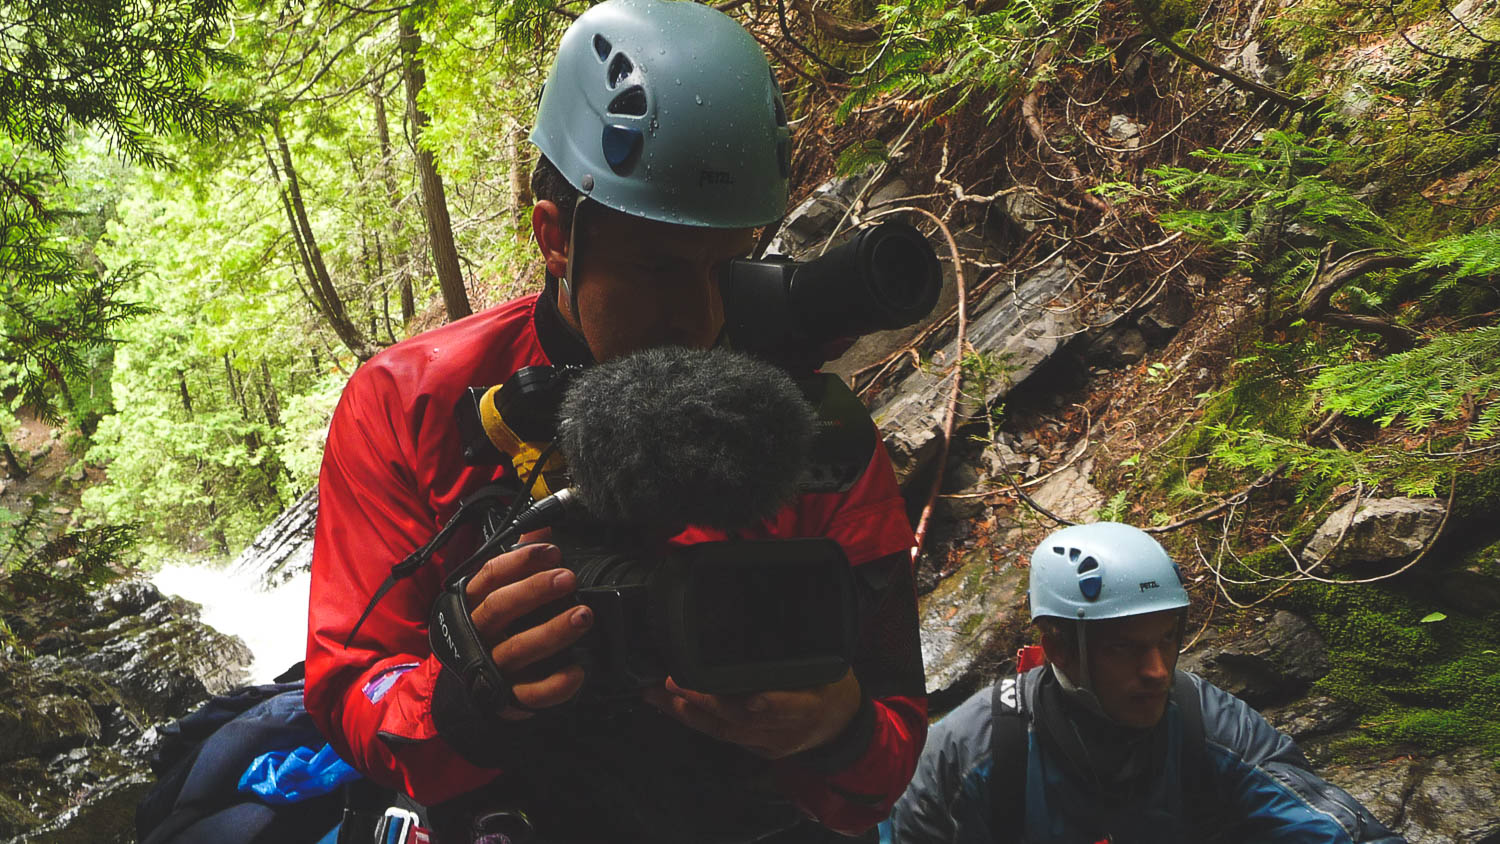 During the production of the TV Show the Great Trails Season 1, the director of photography and director Richard Duquette during a canyoning expedition in the Charlevoix region, near Baie Saint-Paul, Quebec, Canada.